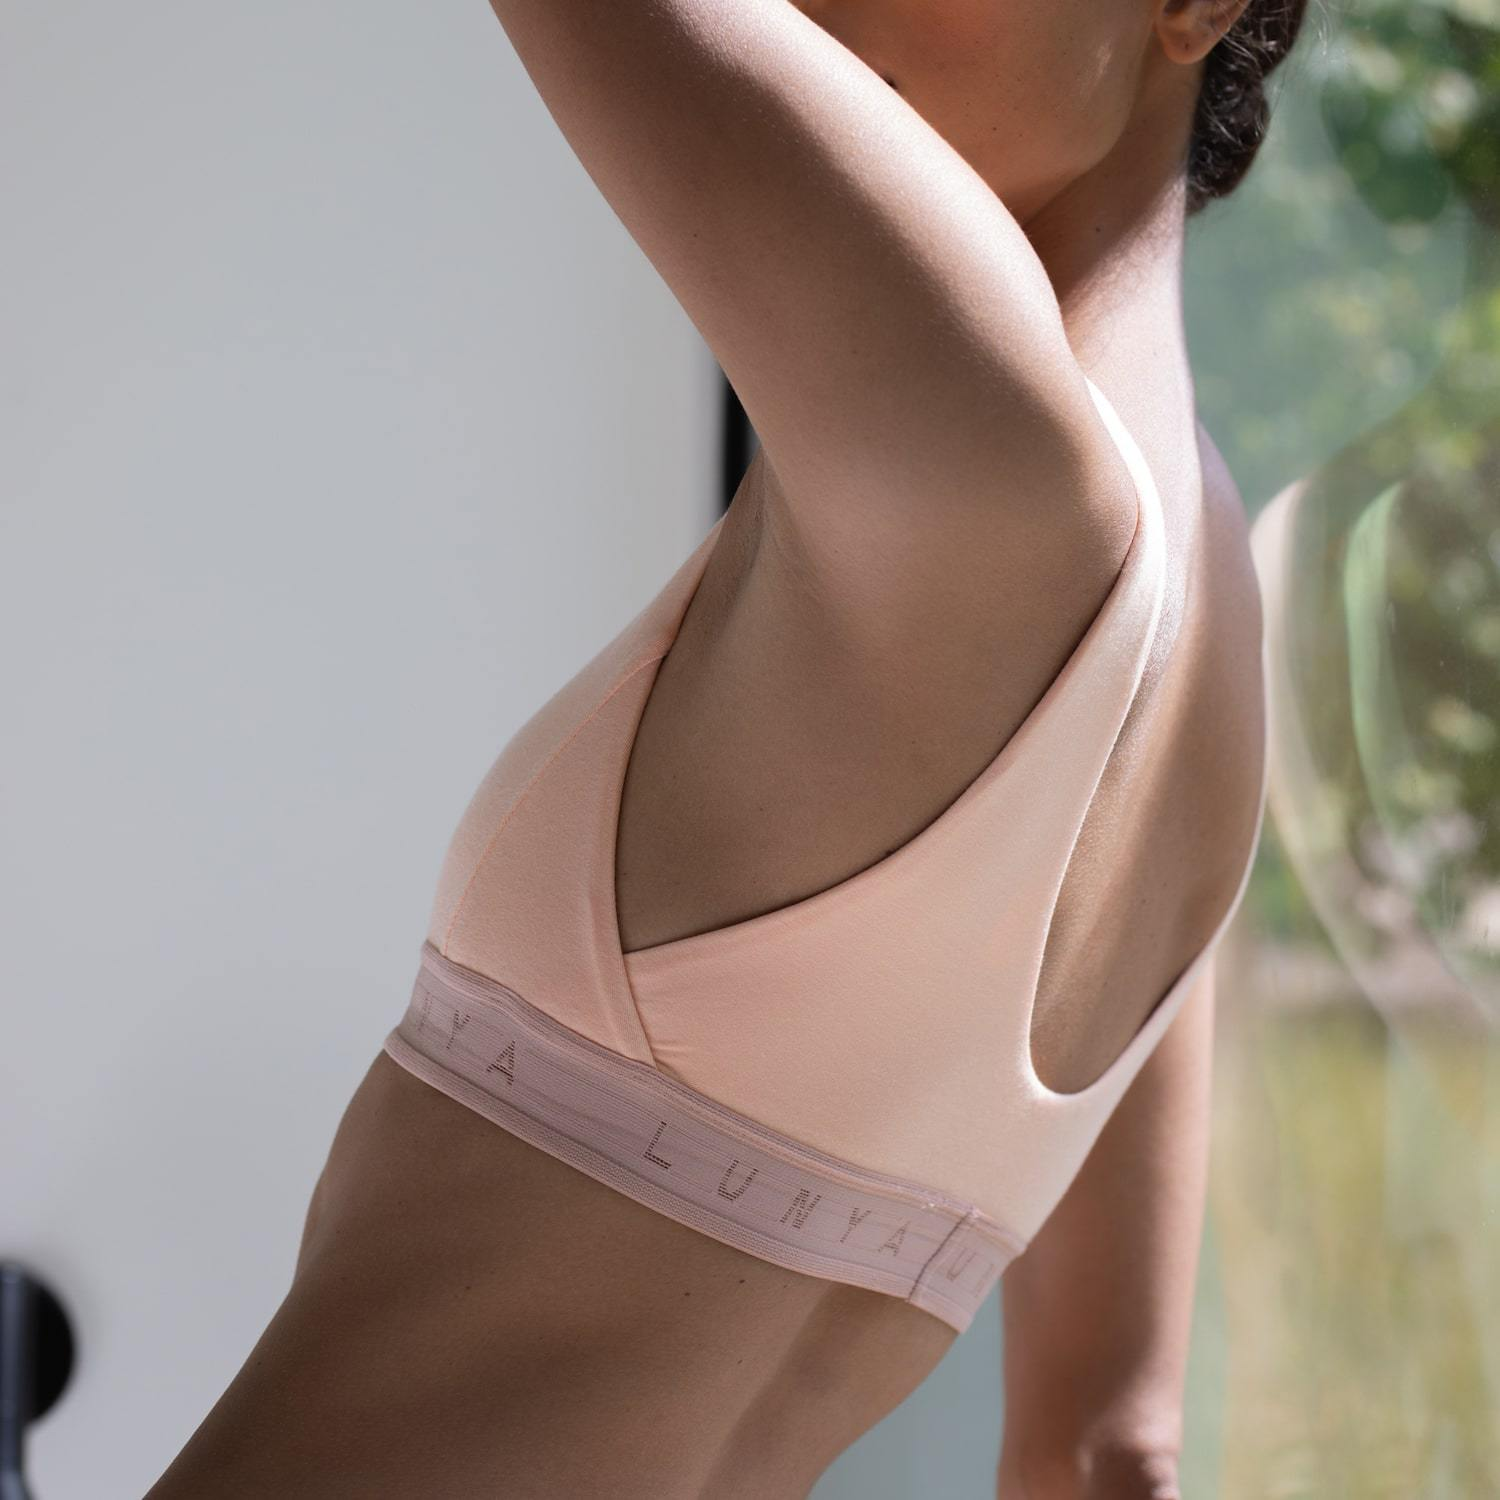 Lunya Sleepwear Supportive Modal Well Rounded Bralette - #Nectar/Bare